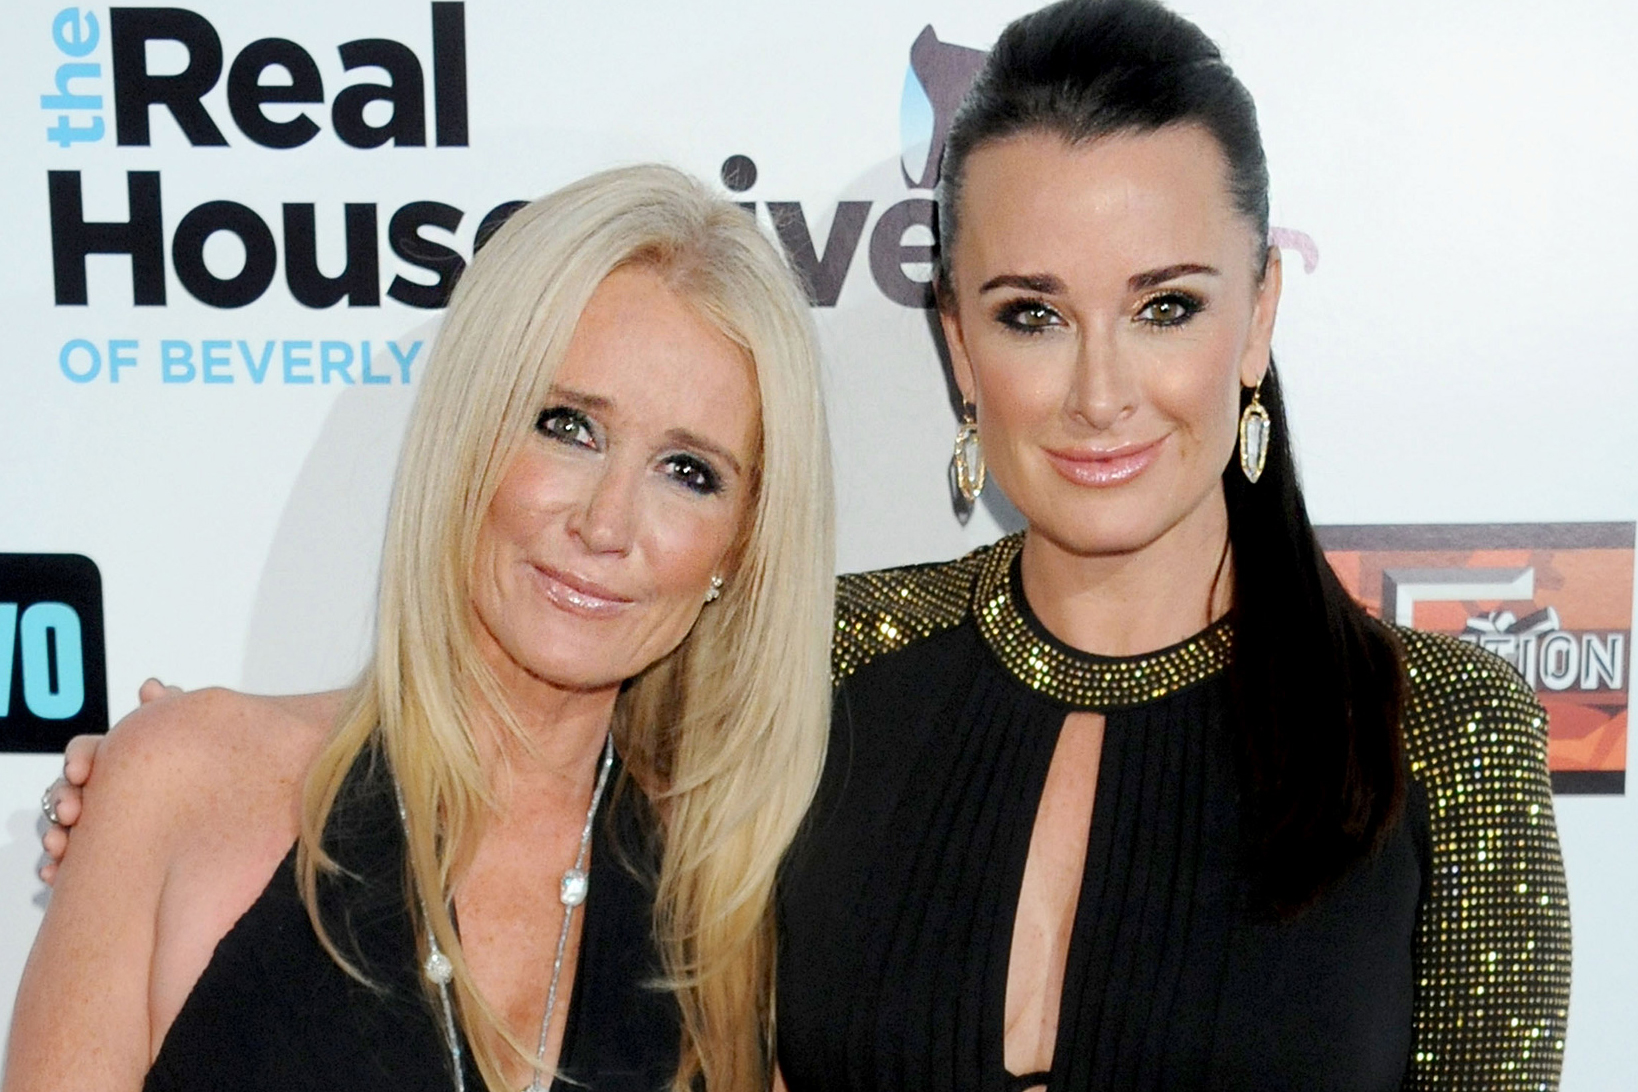 Kim real housewives of beverly hills hookup